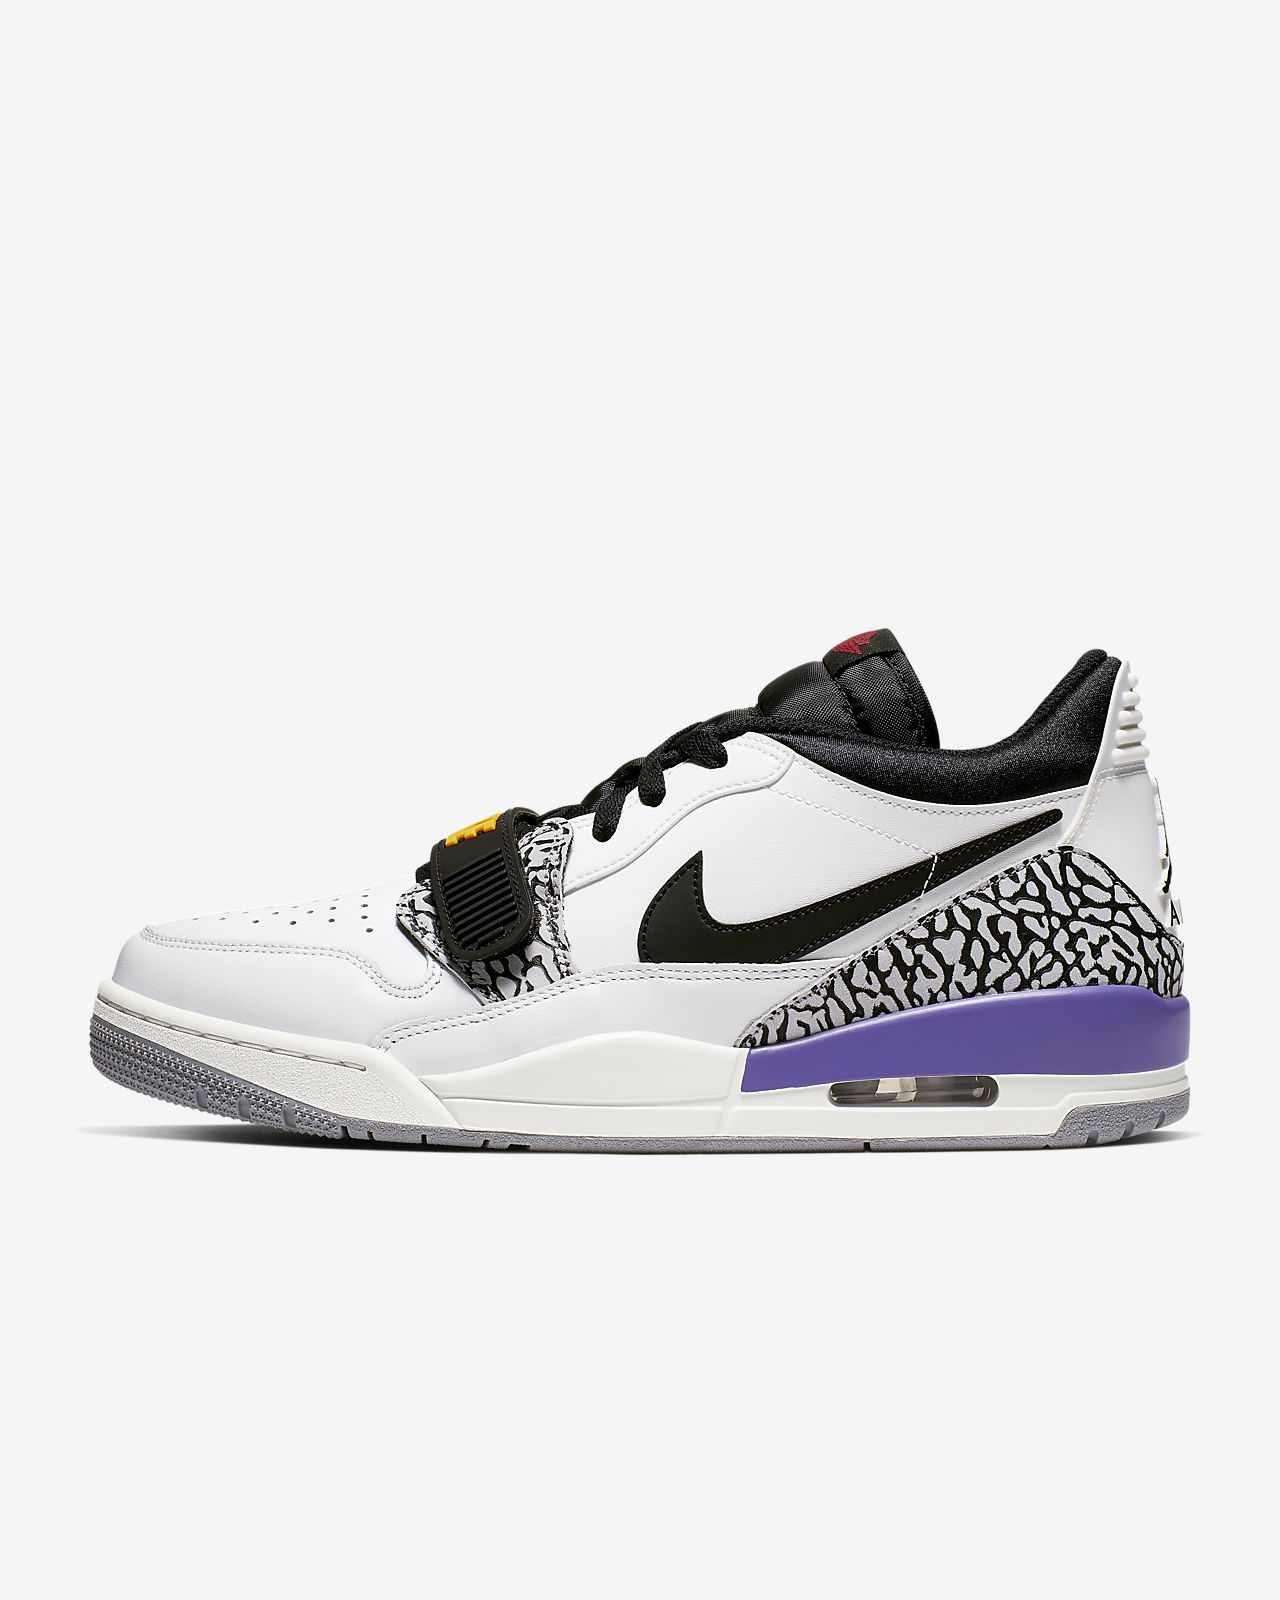 cheap on feet images of beauty Chaussure Air Jordan Legacy 312 Low pour Homme